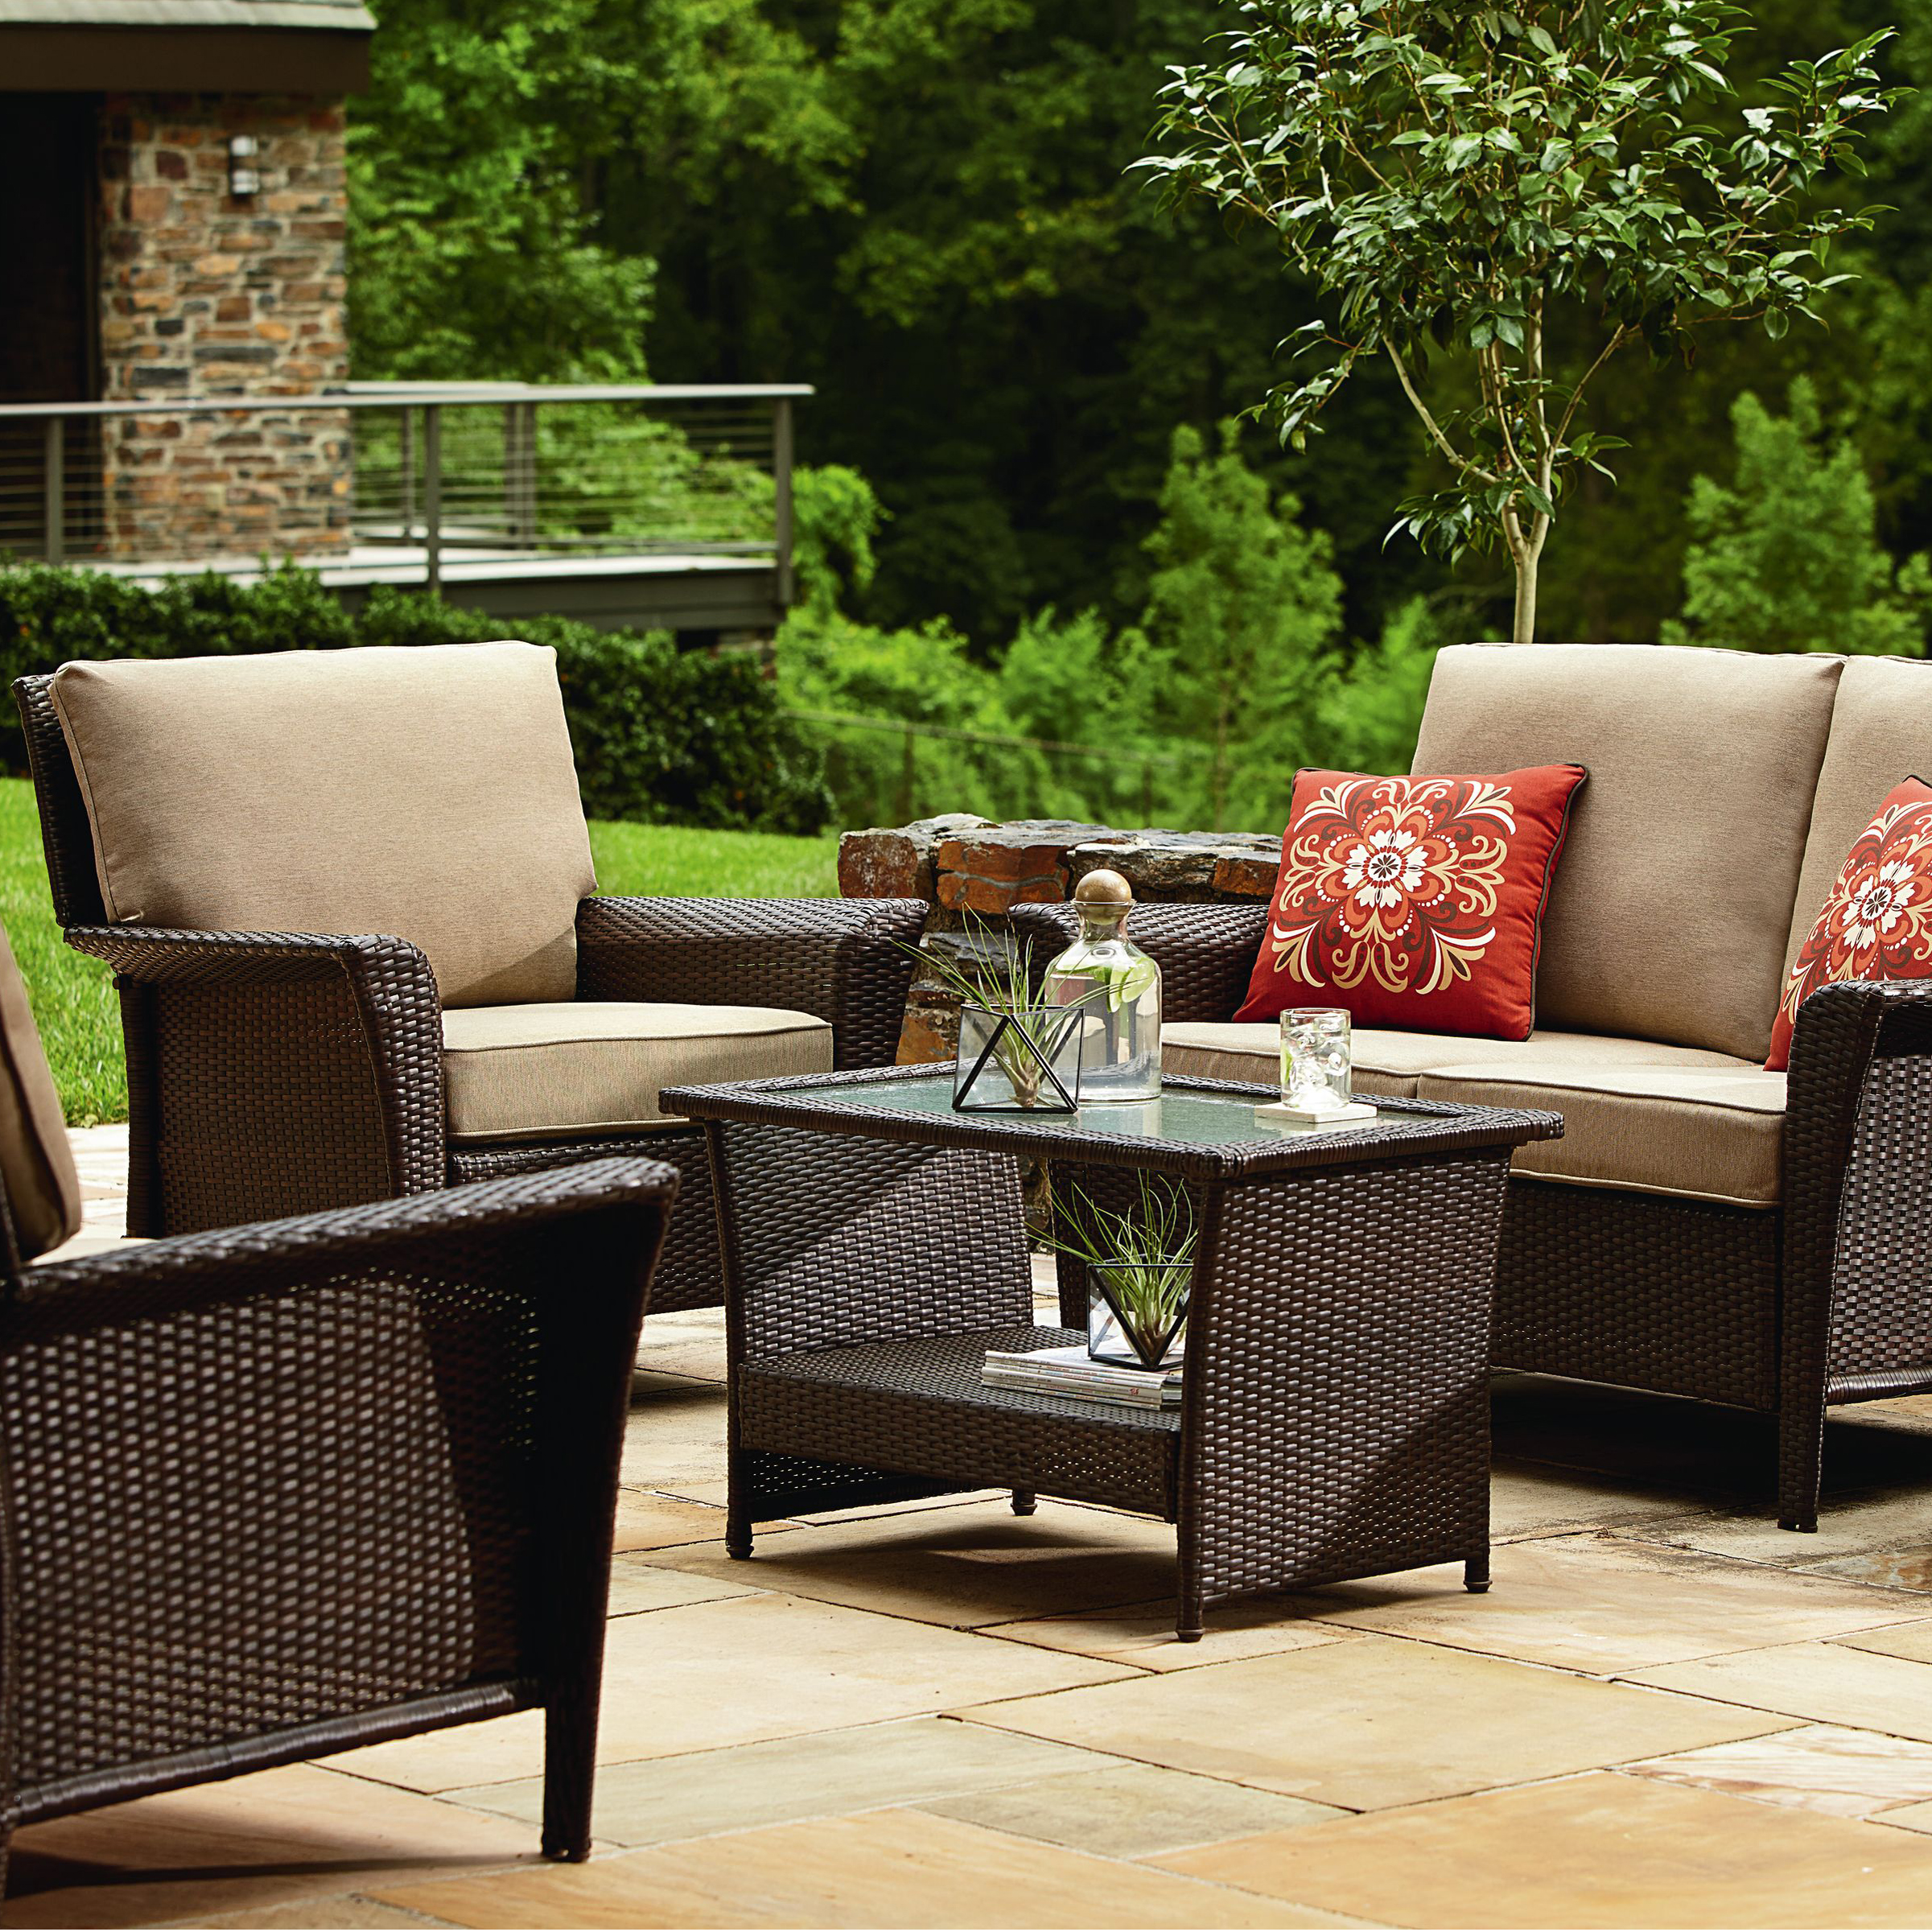 patio conversation sets ty pennington parkside 4 piece seating set- tan *limited availability* HYUITEM